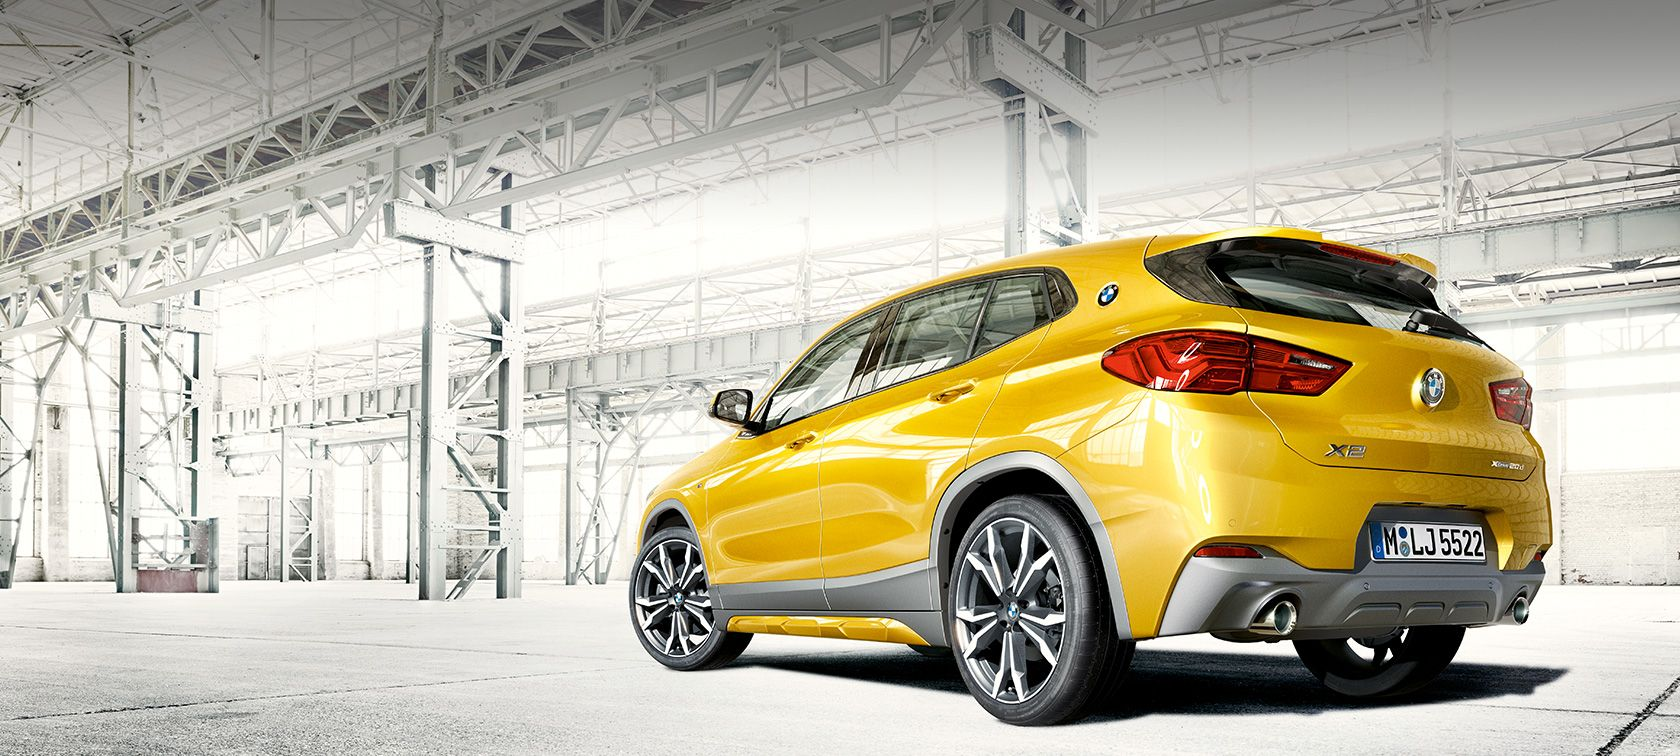 BMW X2 2018 F39 Galvanic Gold metallic set fra siden let drejet